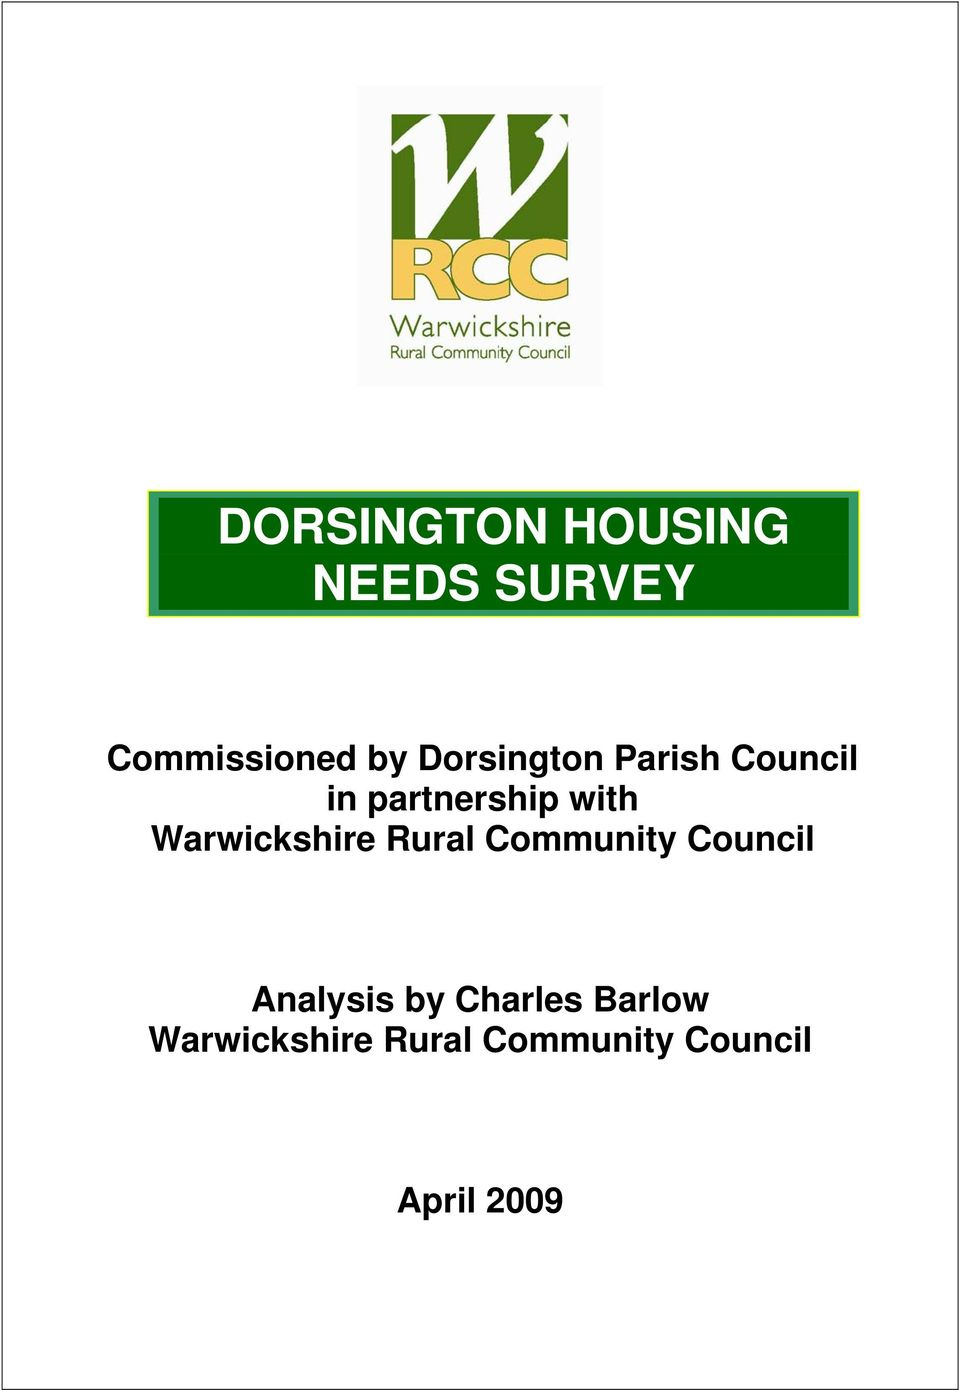 Warwickshire Rural Community Council Analysis by